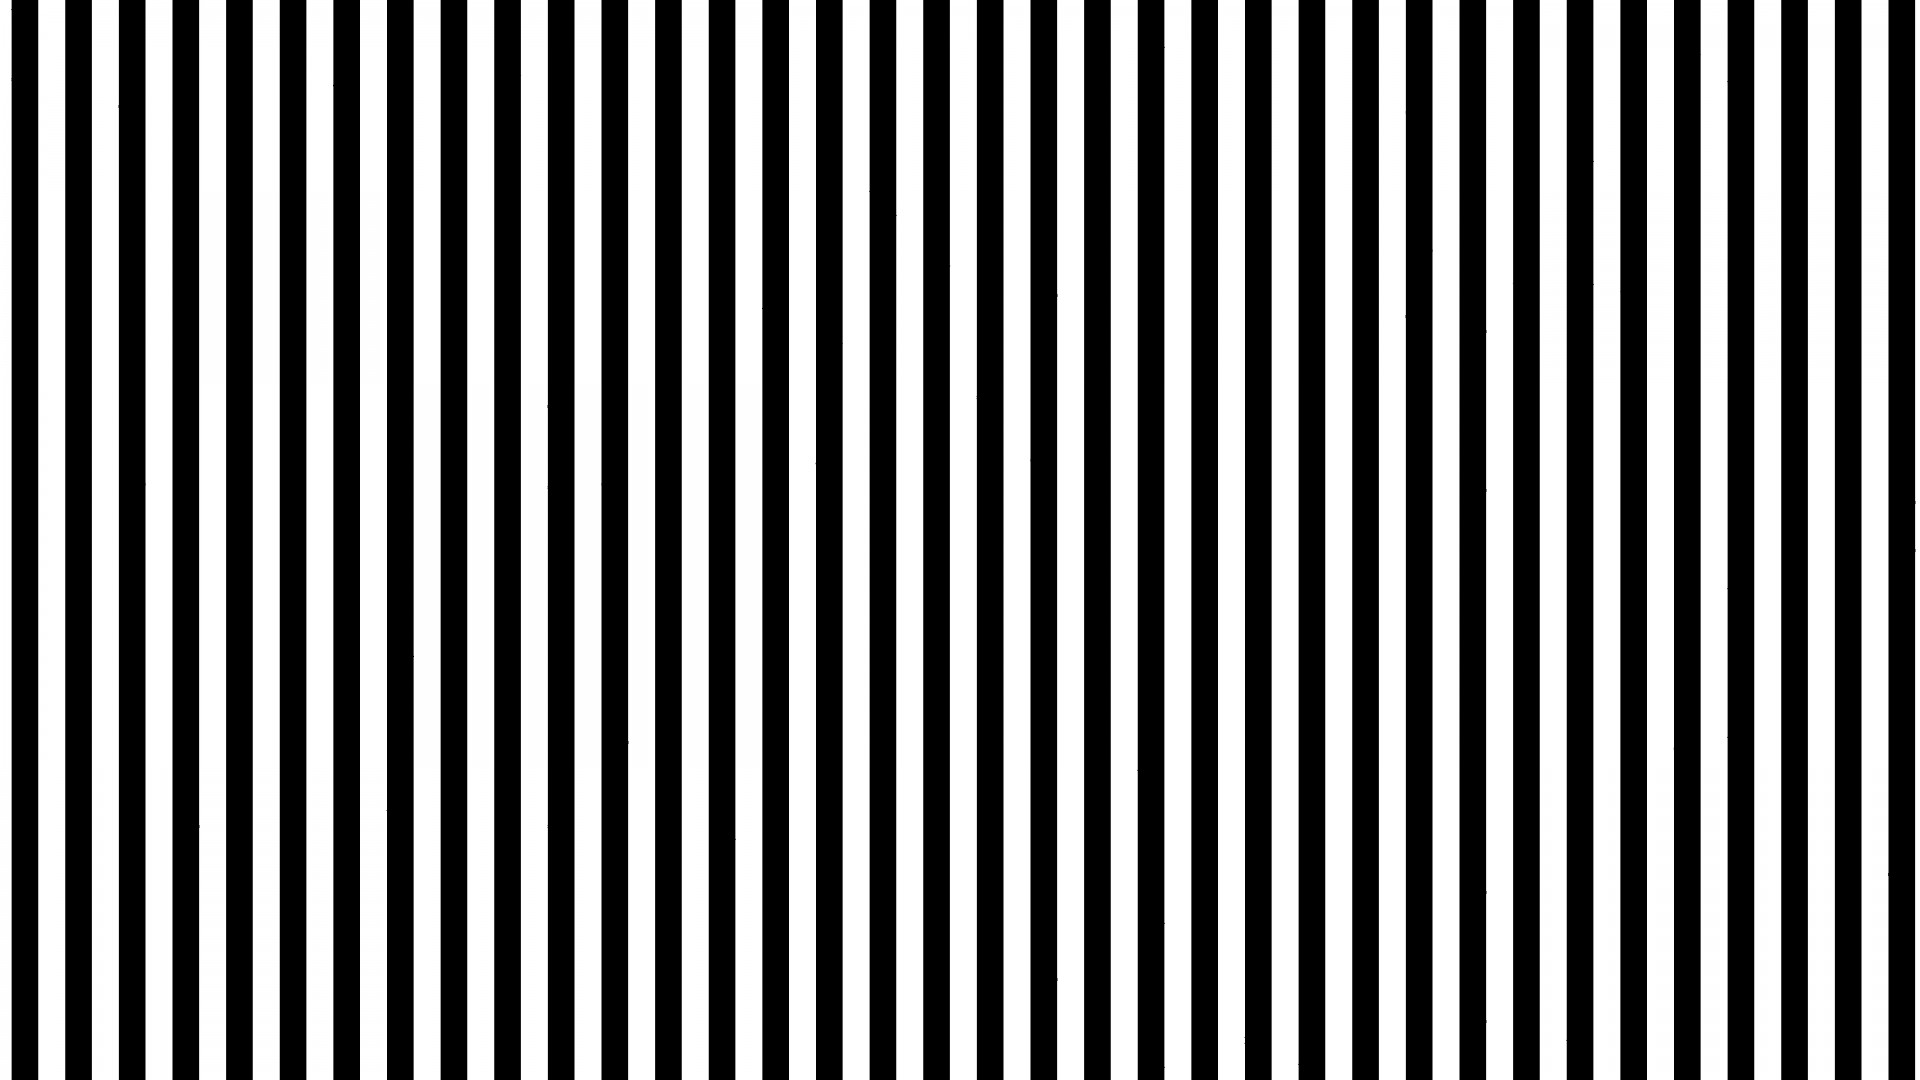 Black And White Bars Pattern Free Stock Photo  Public